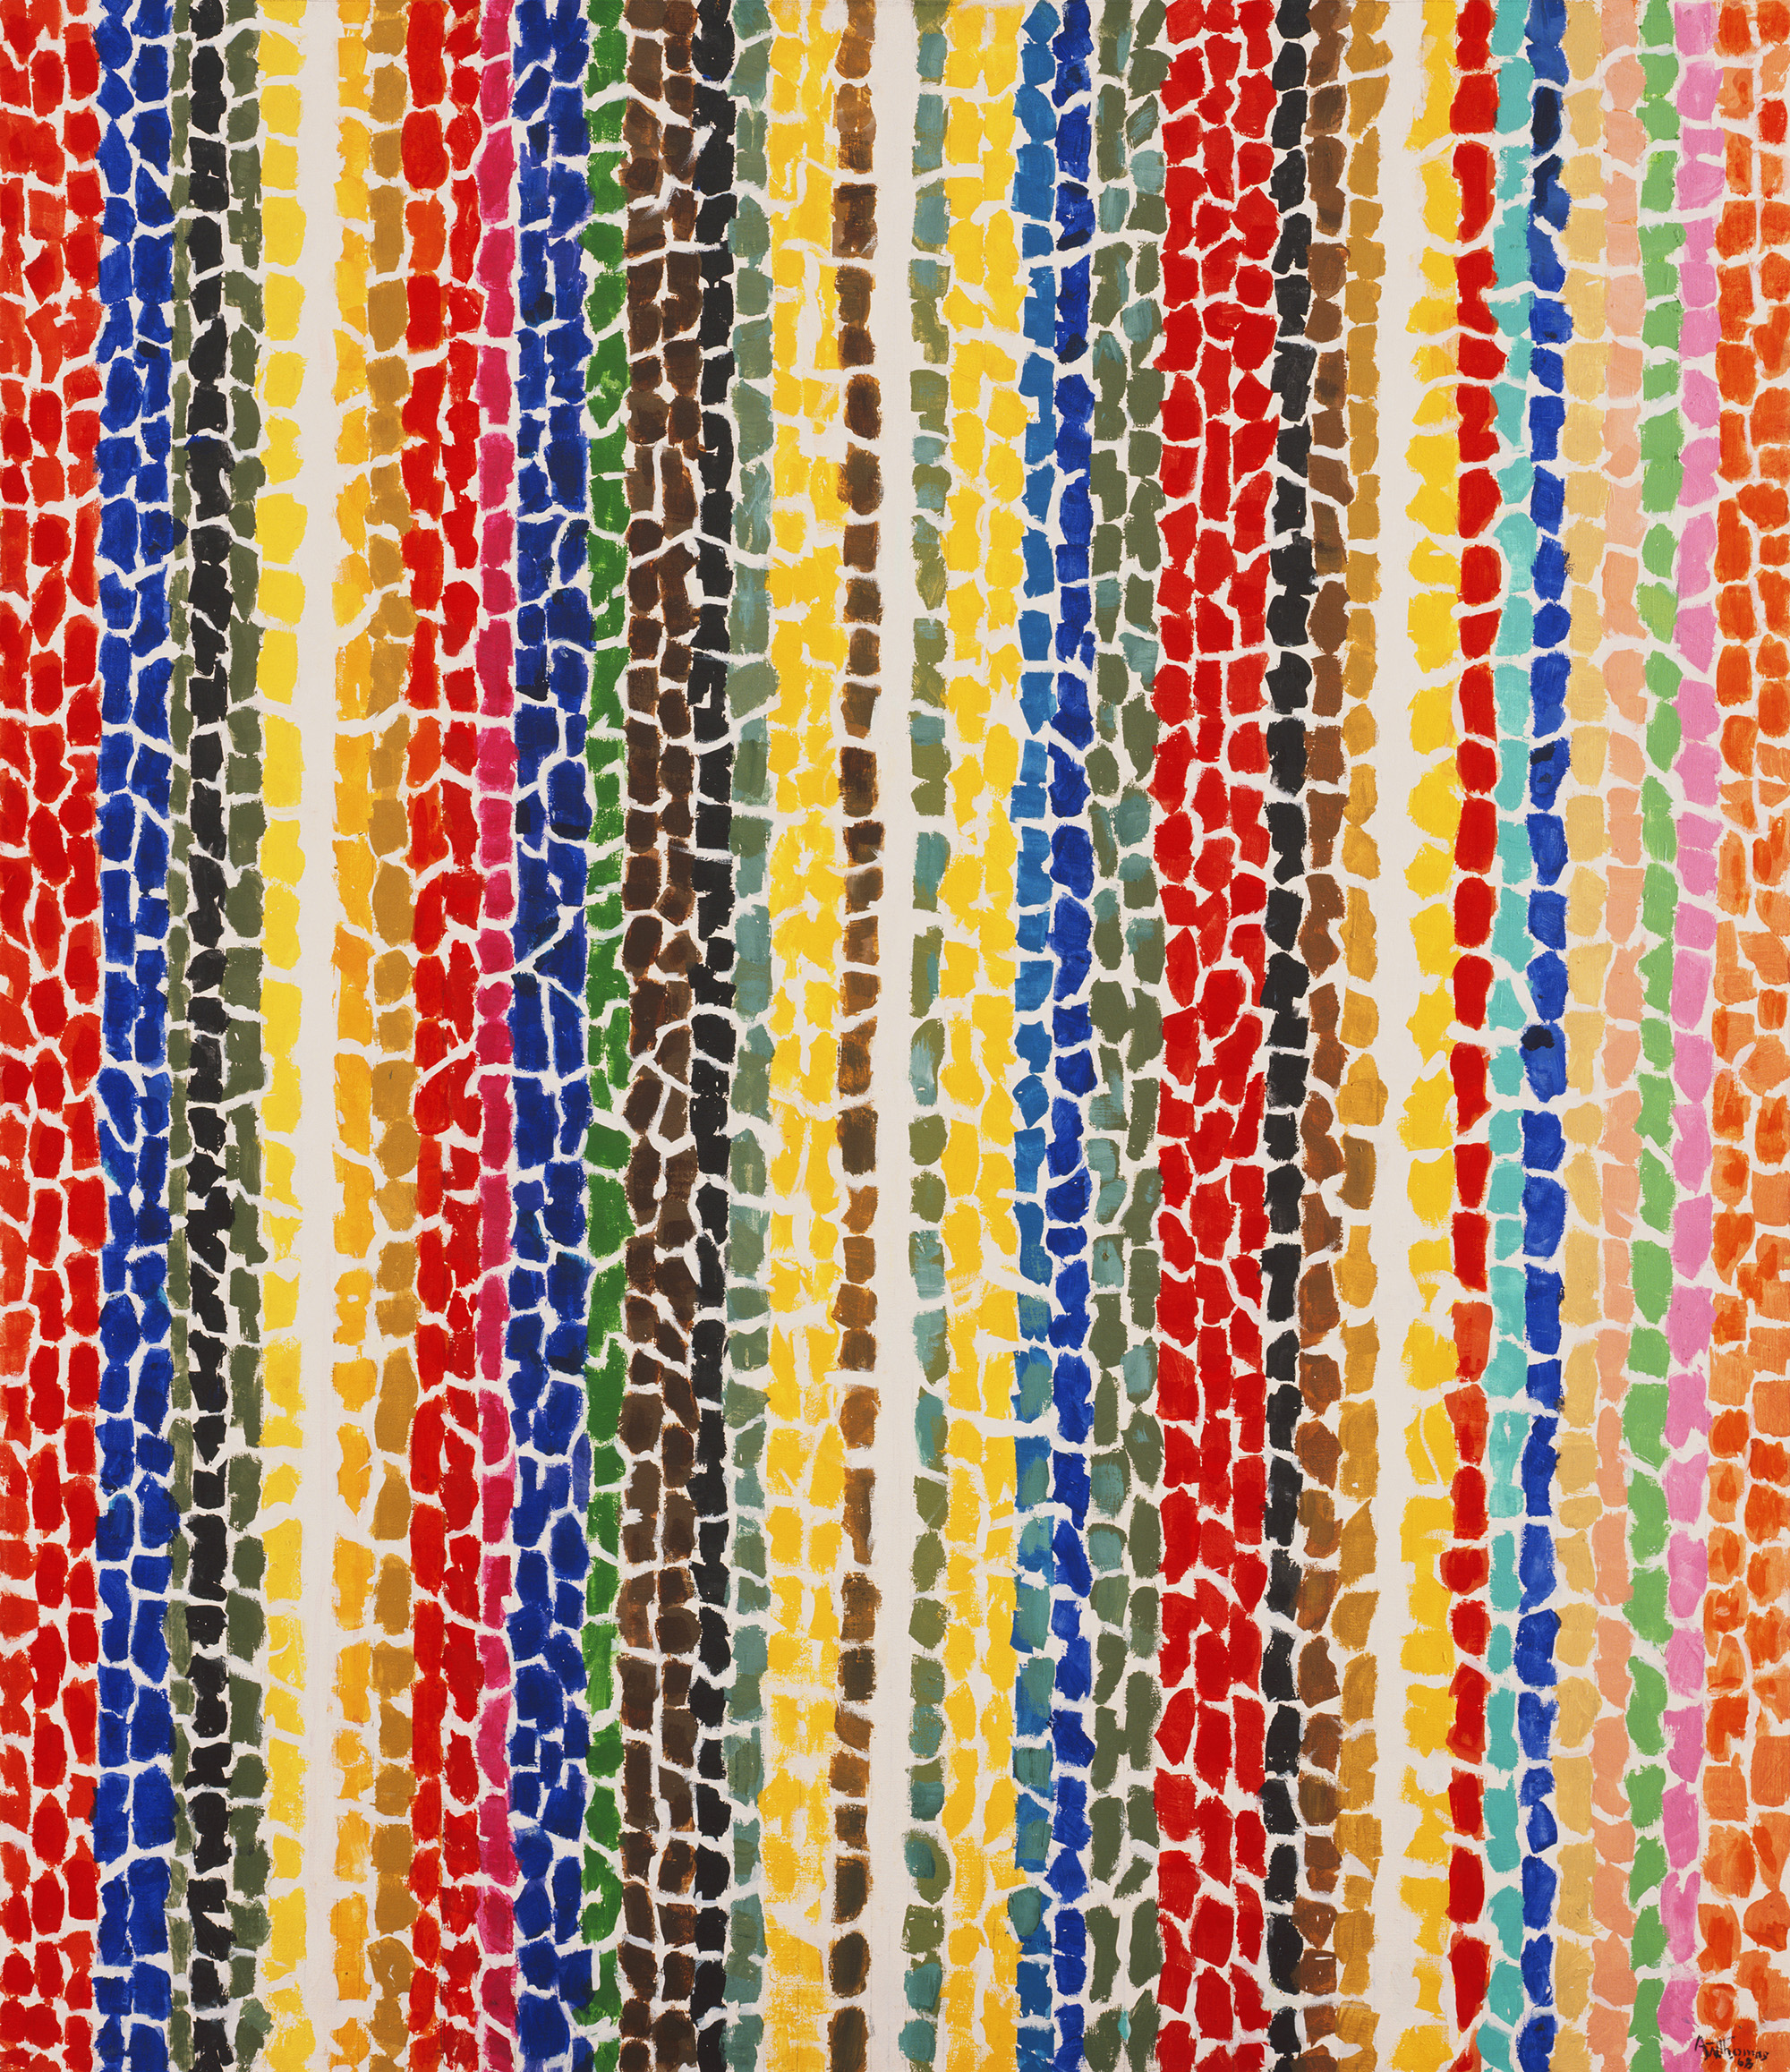 An abstract painting of bright brush strokes arranged in stripes